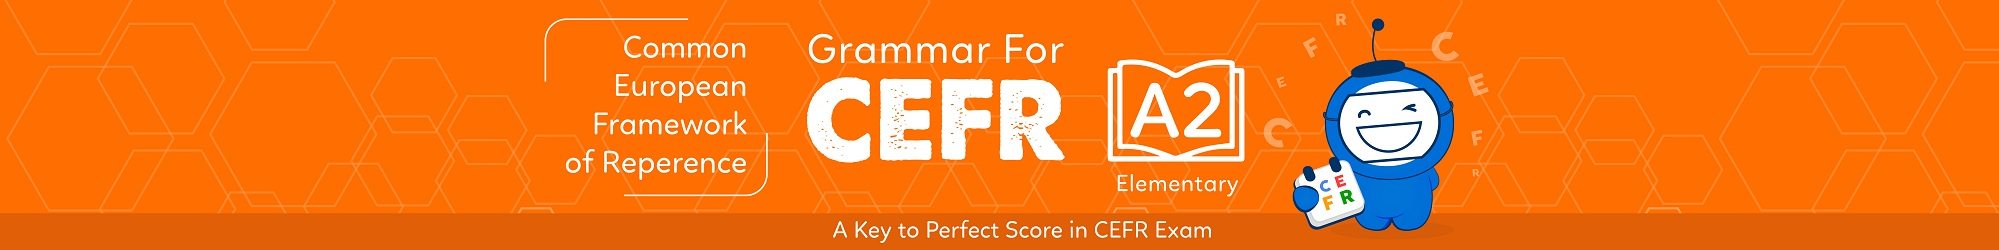 GRAMMAR FOR CEFR (A2) banner